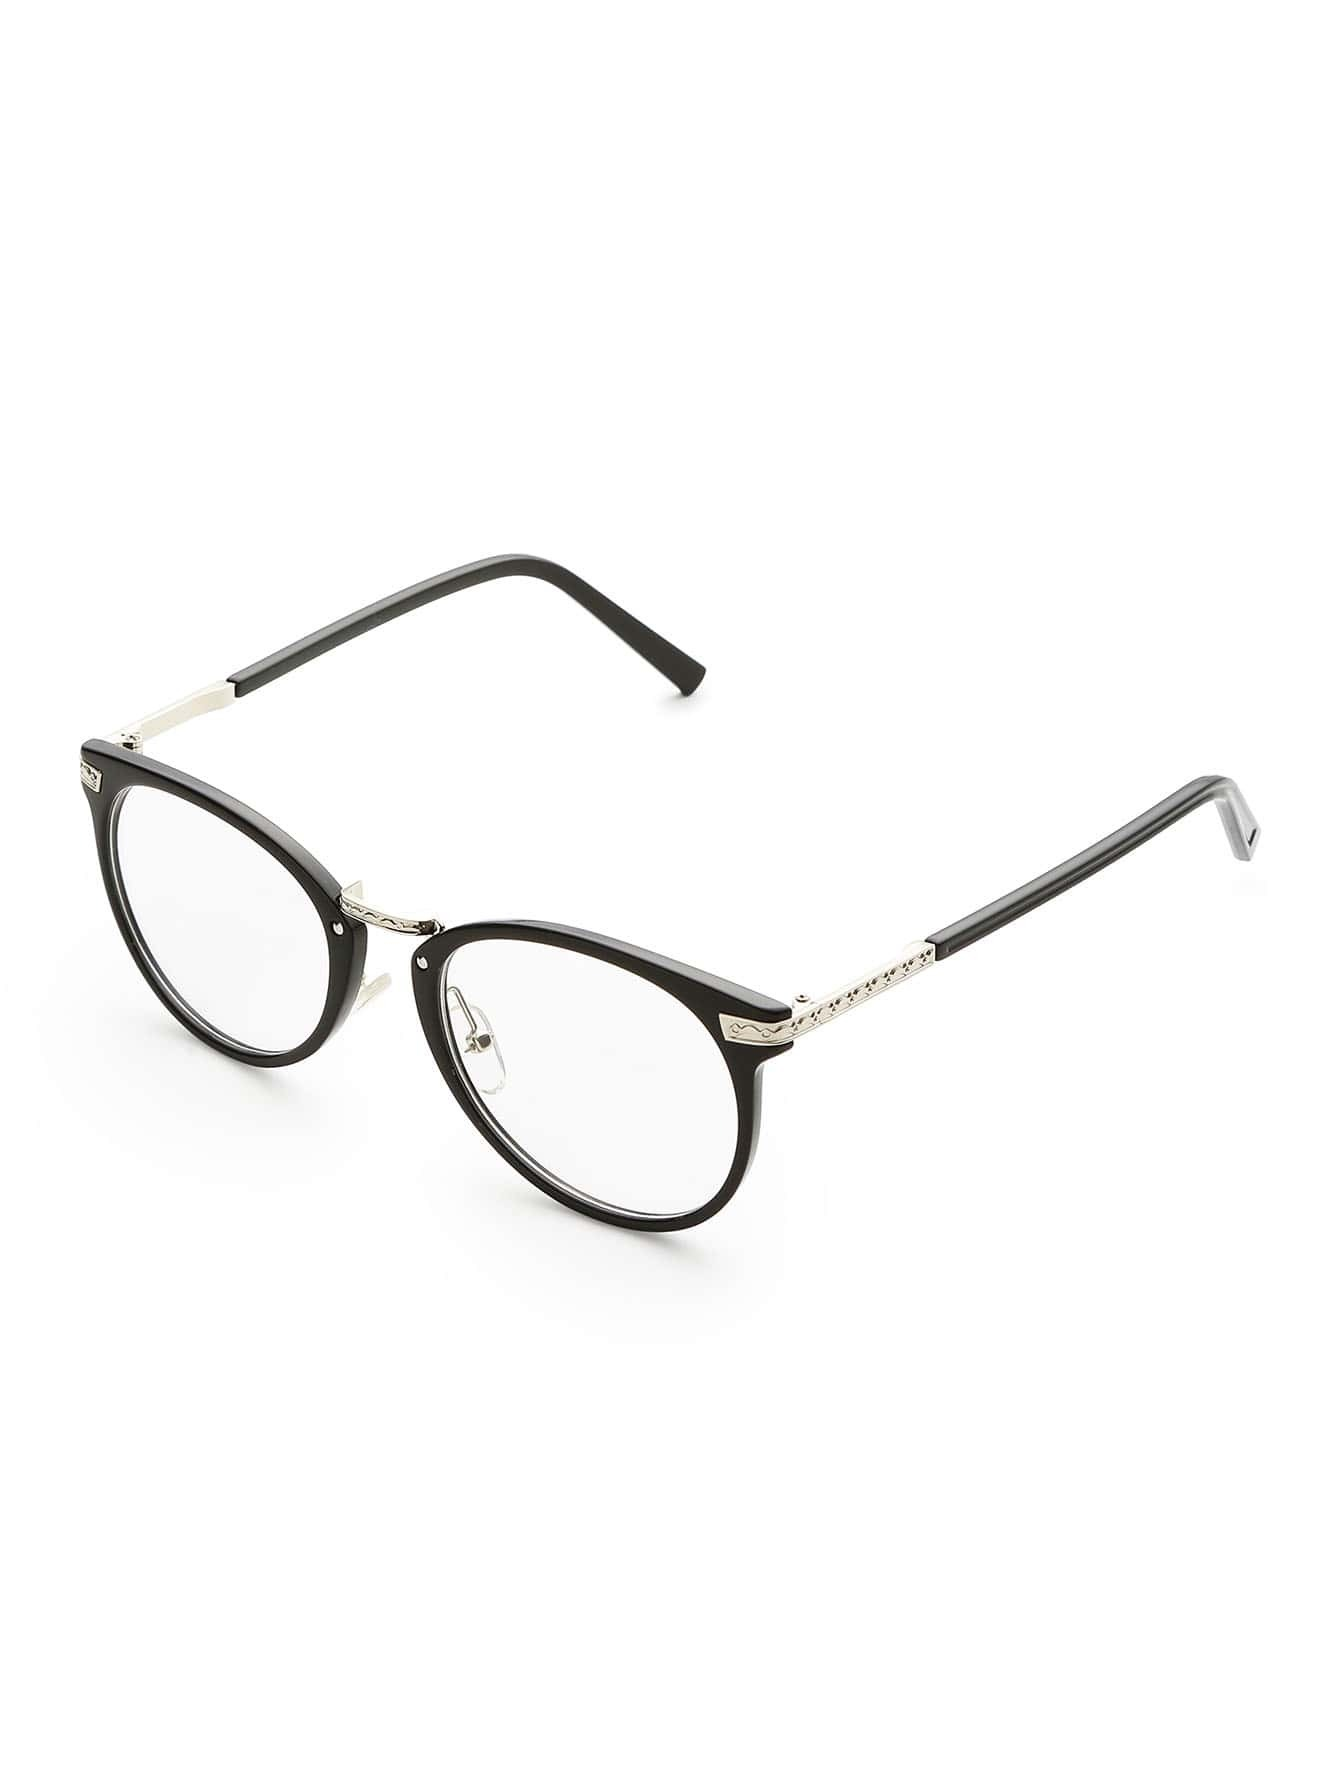 Black Frame Metal Arm Clear Lens Glasses -SheIn(Sheinside)